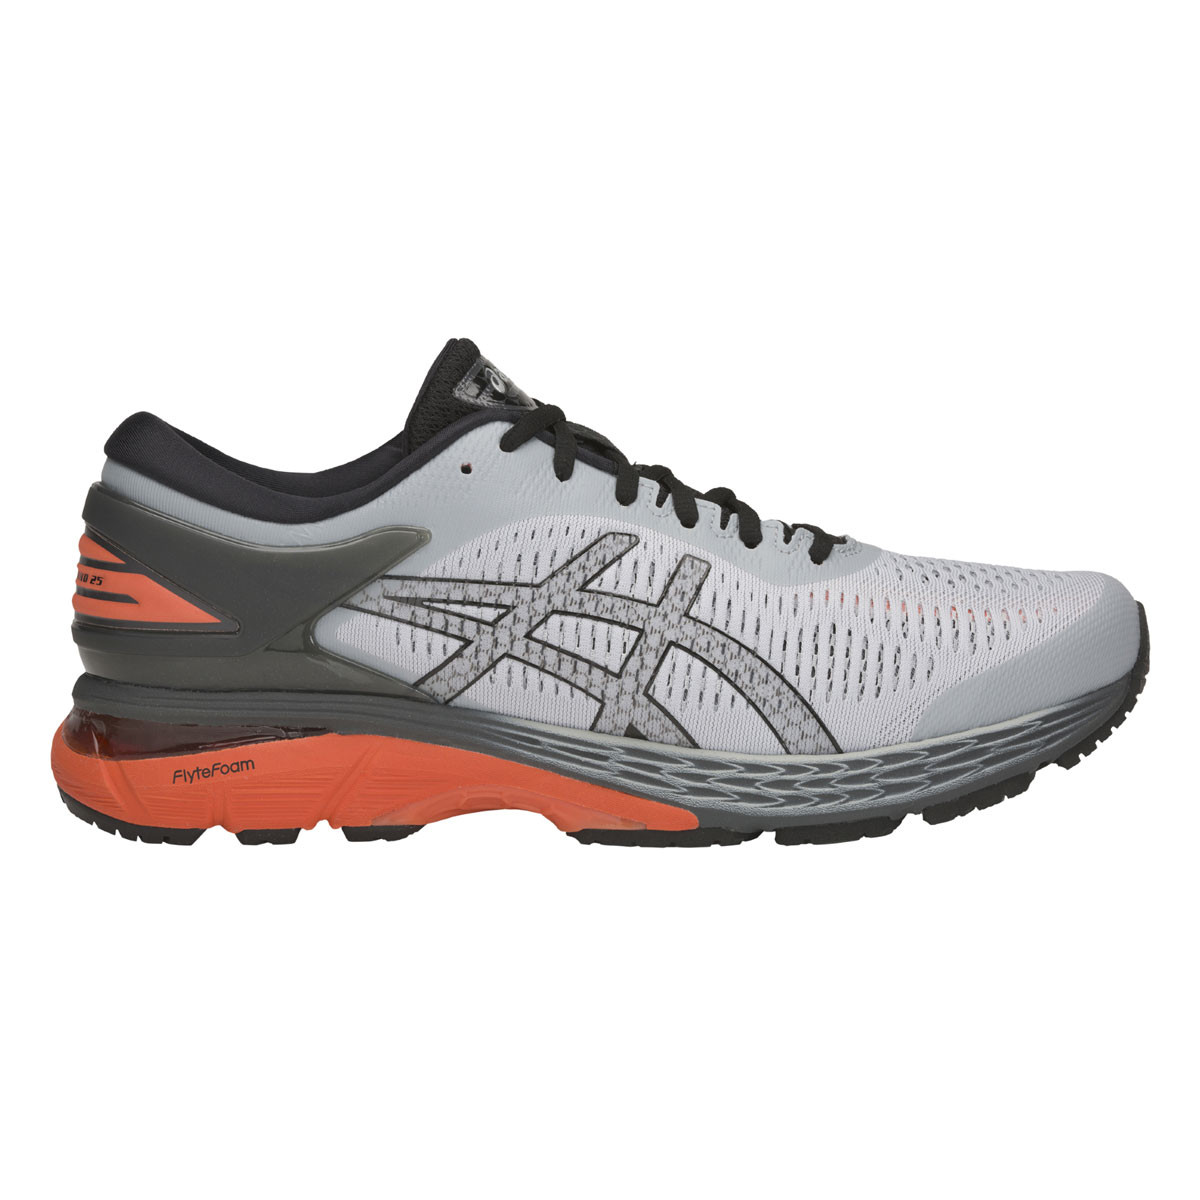 Chaussure de running Gel Kayano 25 - Mid Grey/Nova Orange 1